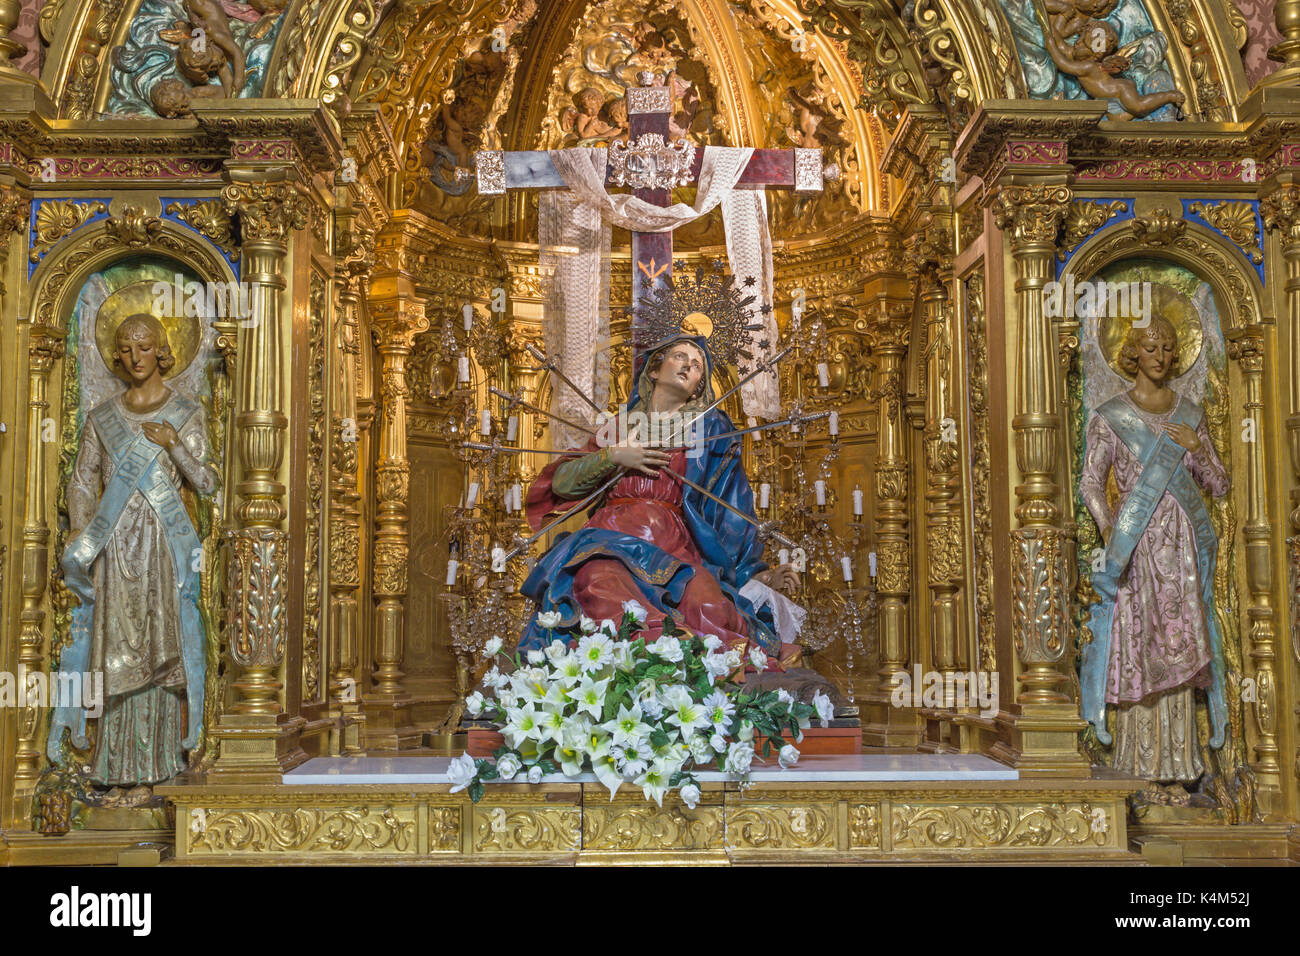 SALAMANCA, SPAIN, APRIL - 17, 2016: The carved polychrome baroque altar of Our Lady of Sorrow (Capilla de los Dolores) - Stock Image